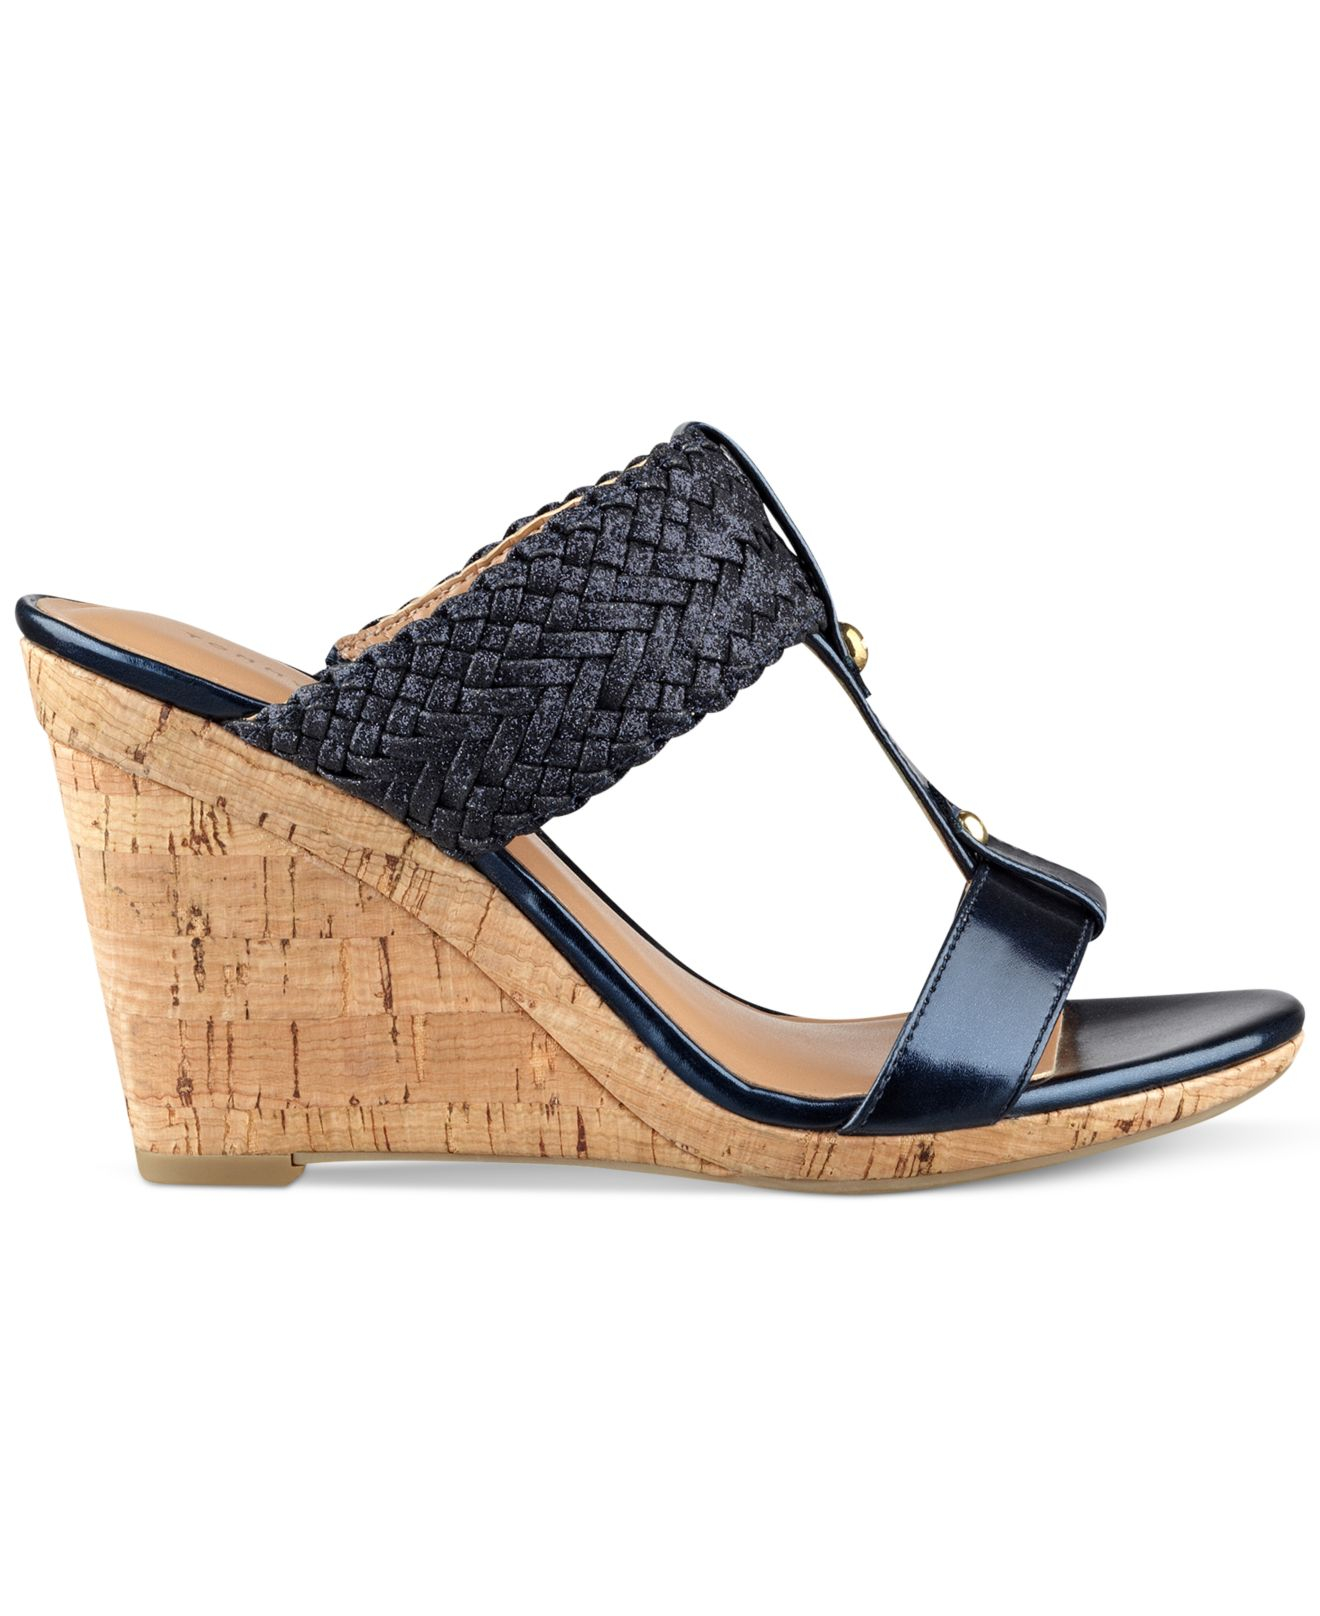 1d3d690d29b909 Lyst - Tommy Hilfiger Women s Eleona Wedge Sandals in Blue